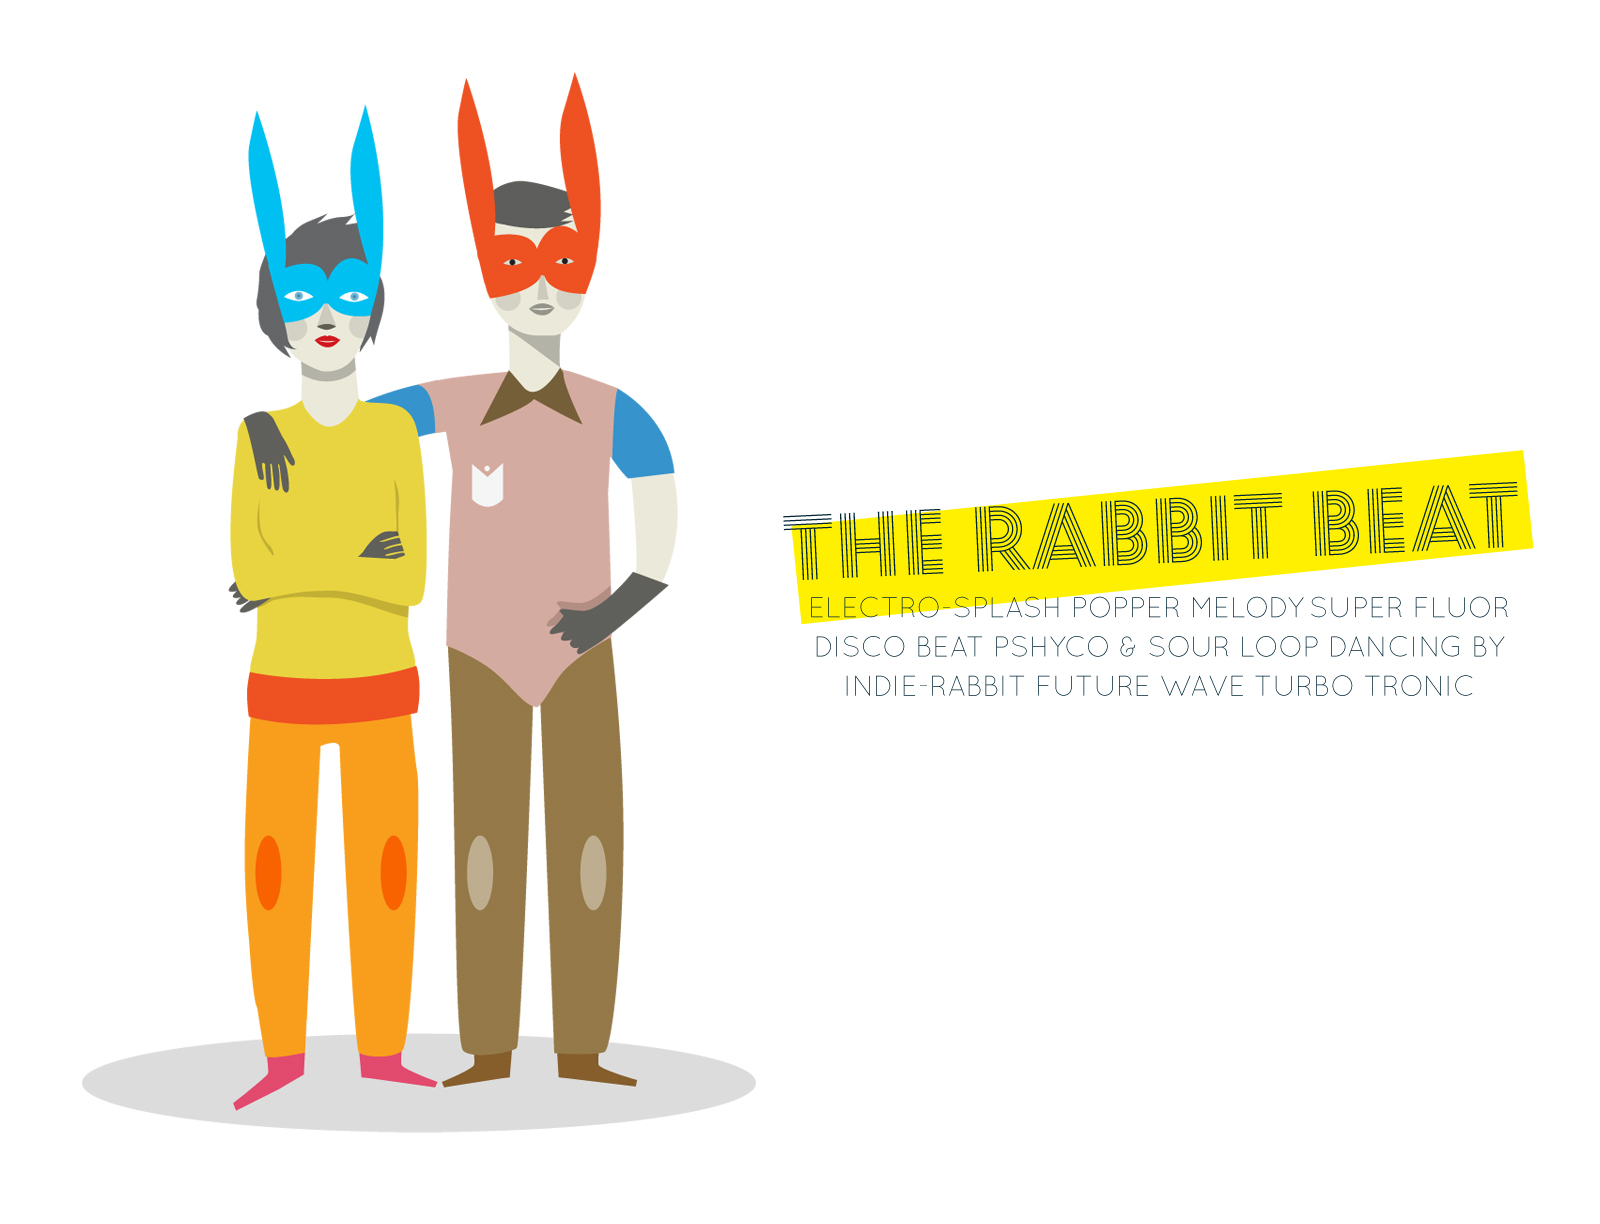 THE-RABBIT-BEAT